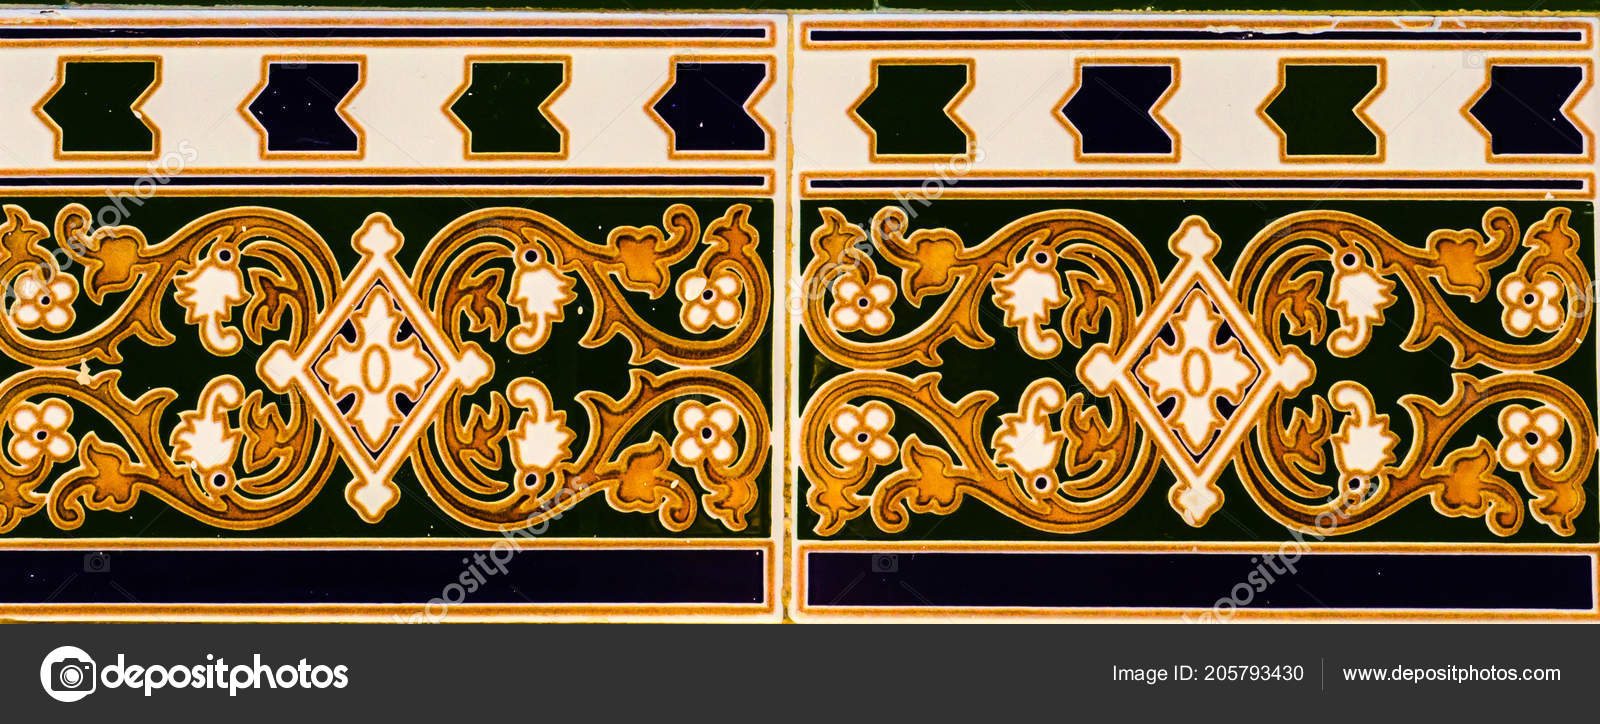 Traditional Ornamental Spanish Decorative Tiles Original Within Spanish Ornamental Wall Decor (View 17 of 30)